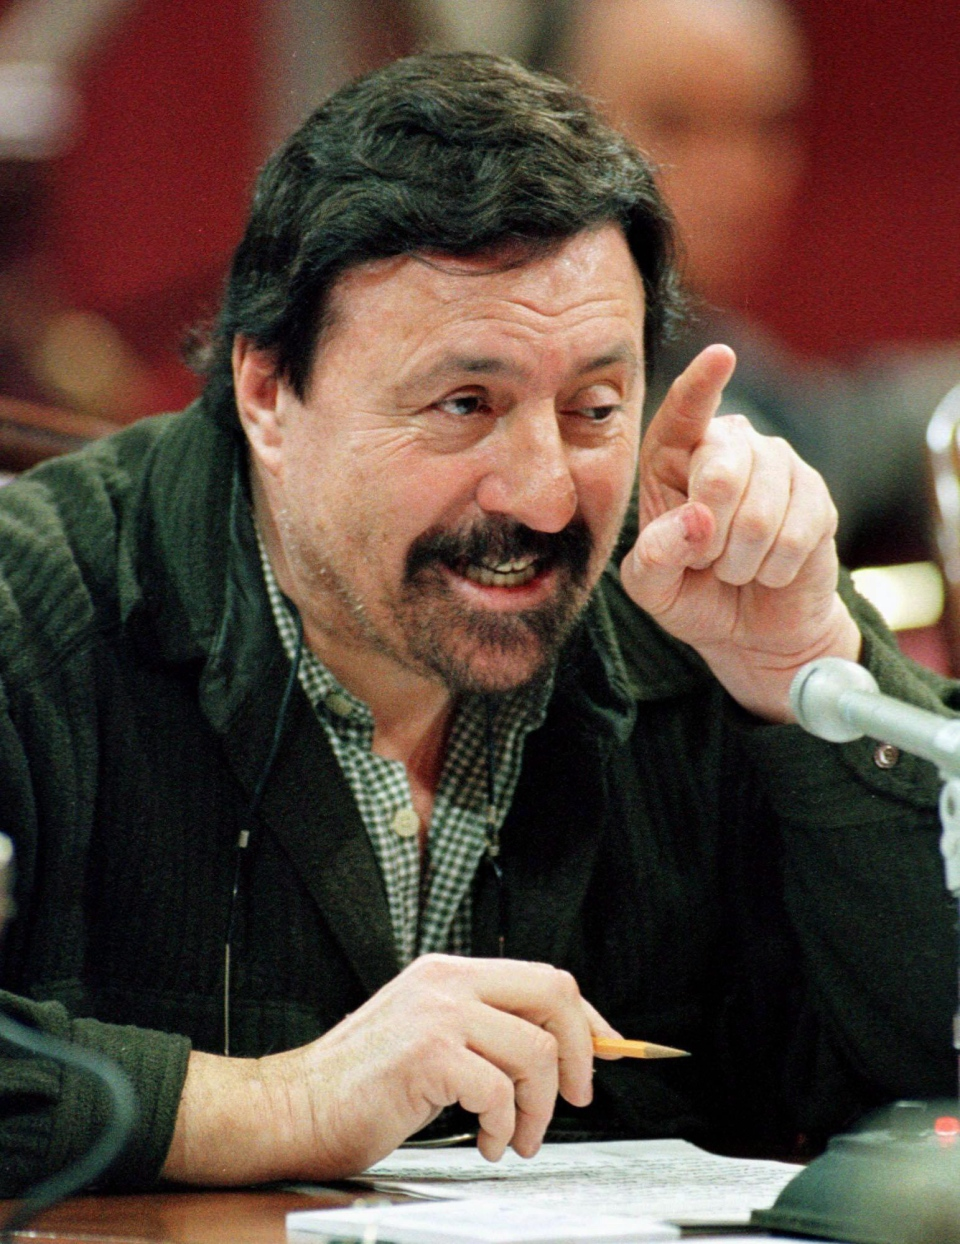 Former FLQ member Paul Rose gestures as he appears before a legislature committee in Quebec City in this March 2000 file photo. (Jacques Boissinot / THE CANADIAN PRESS)